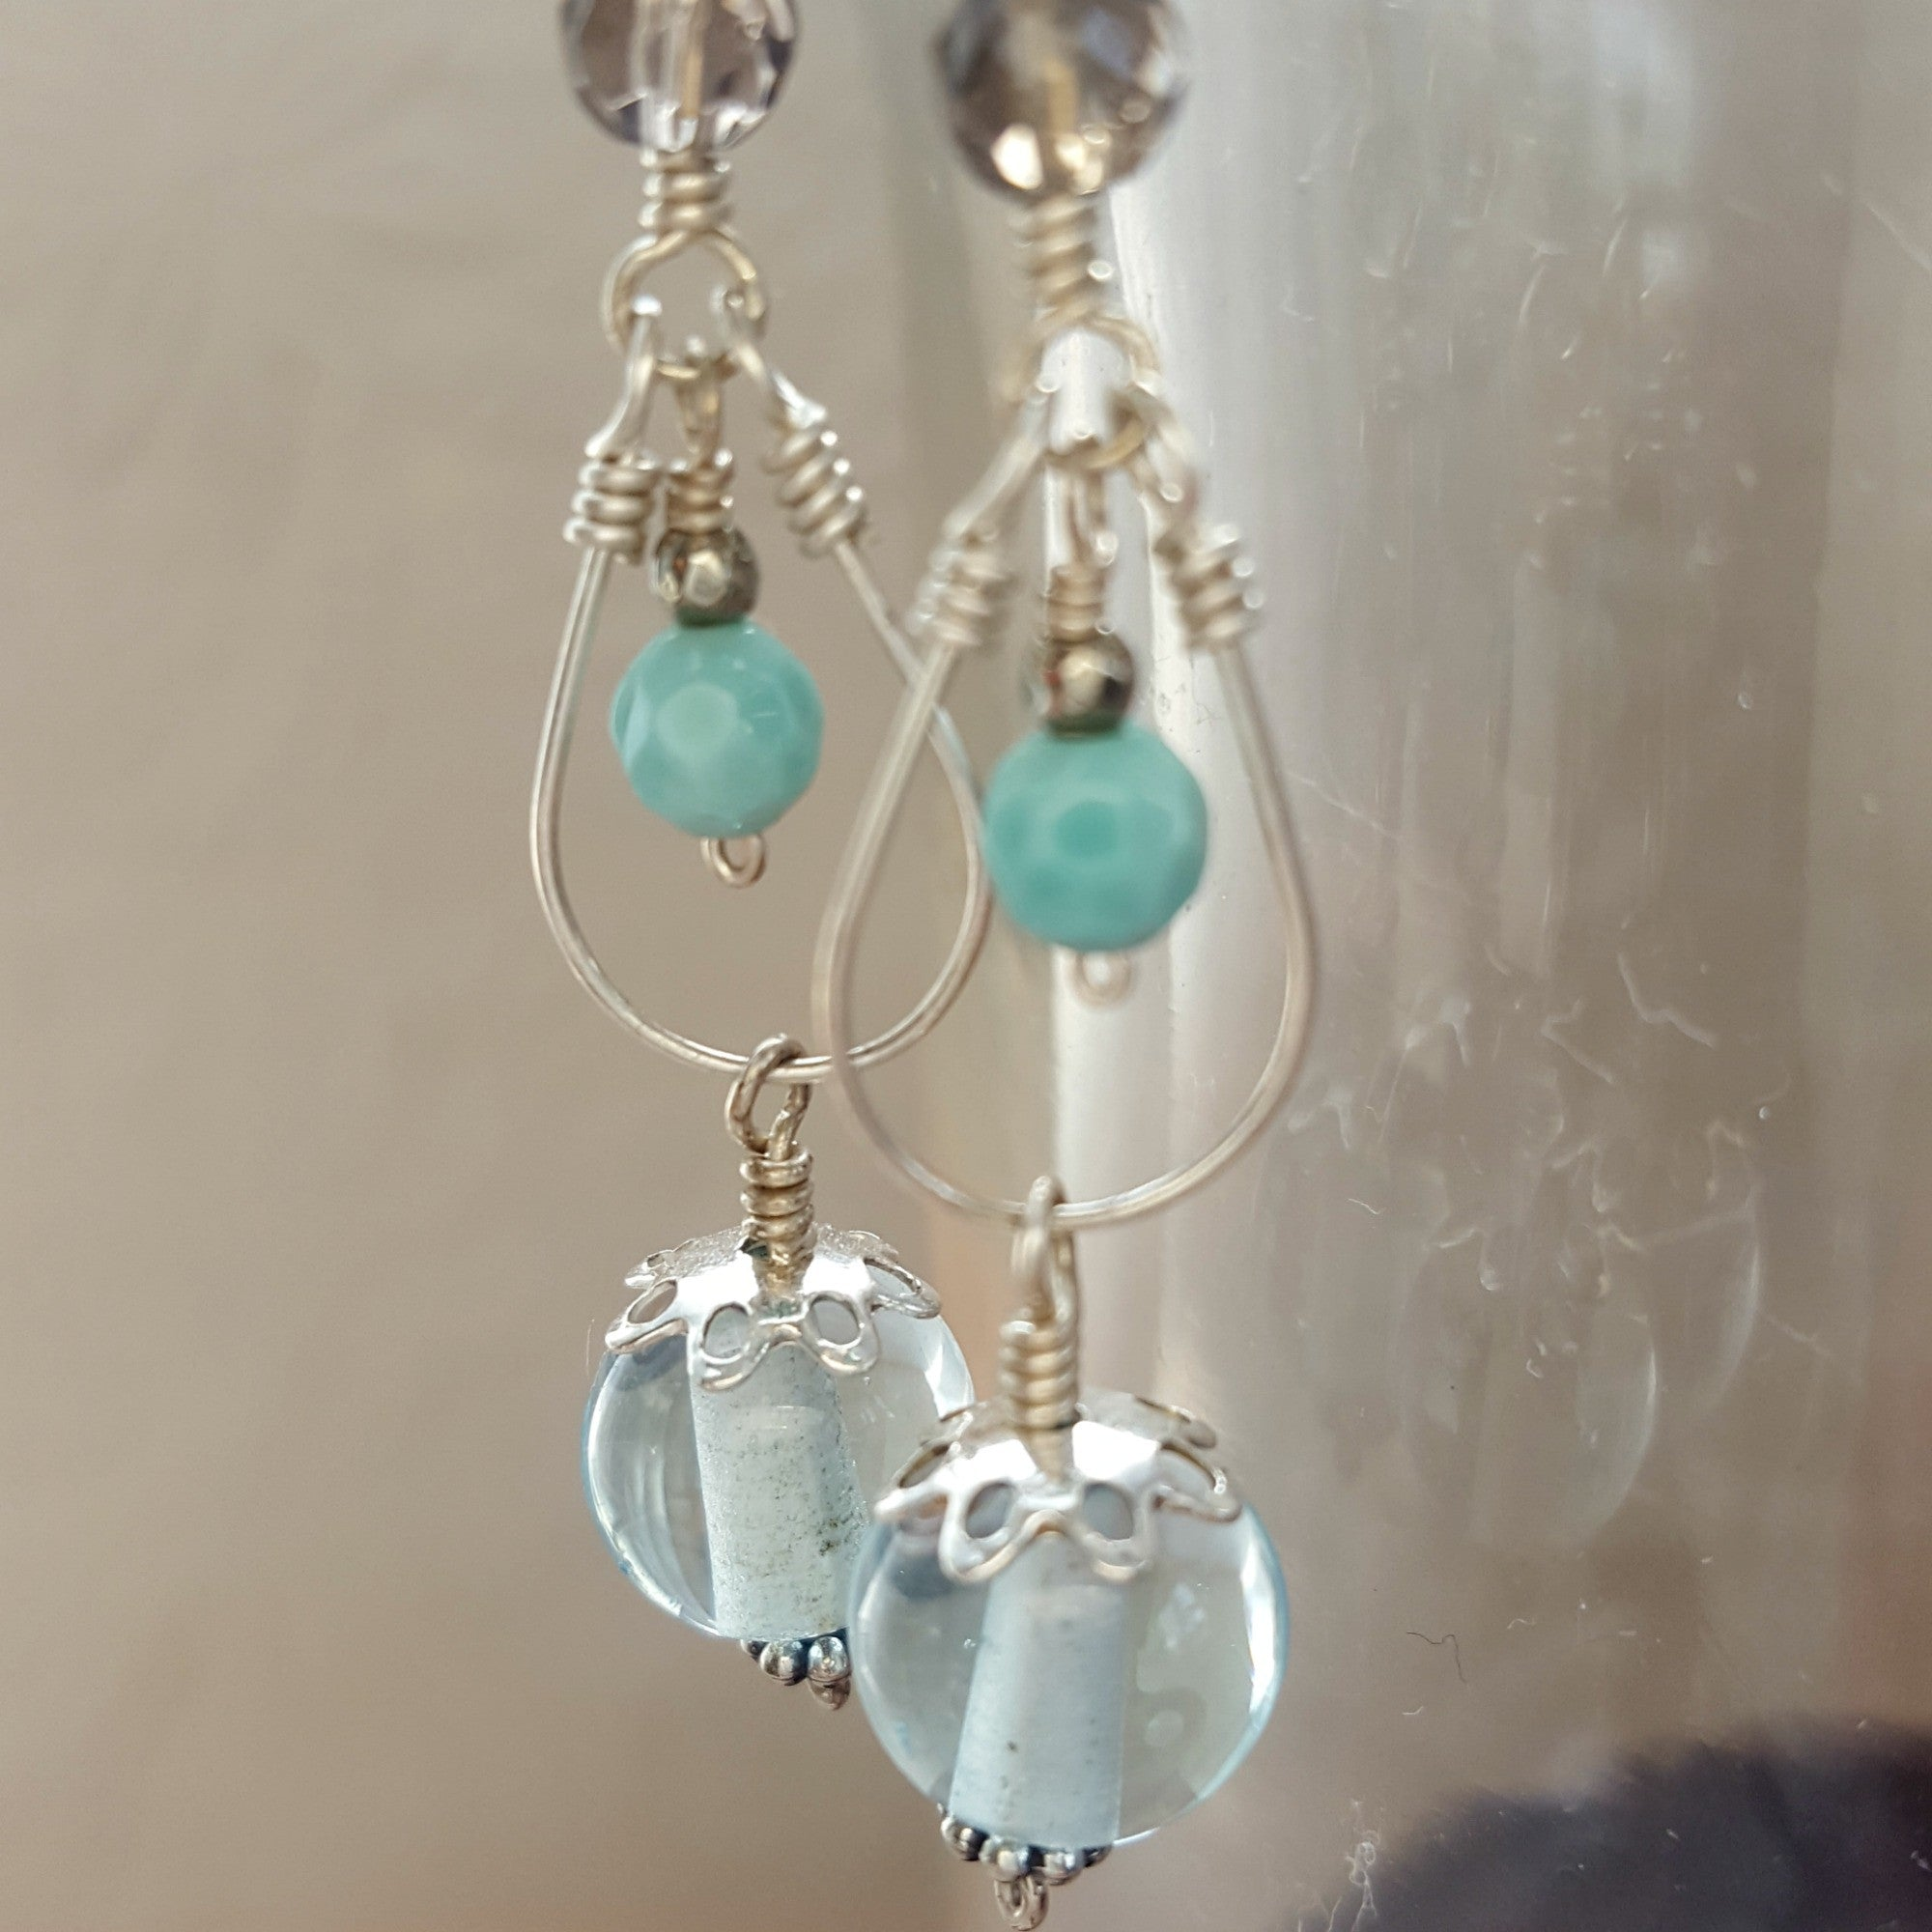 Pale Aqua Mini Chandelier Earrings Donna Sauers Designs